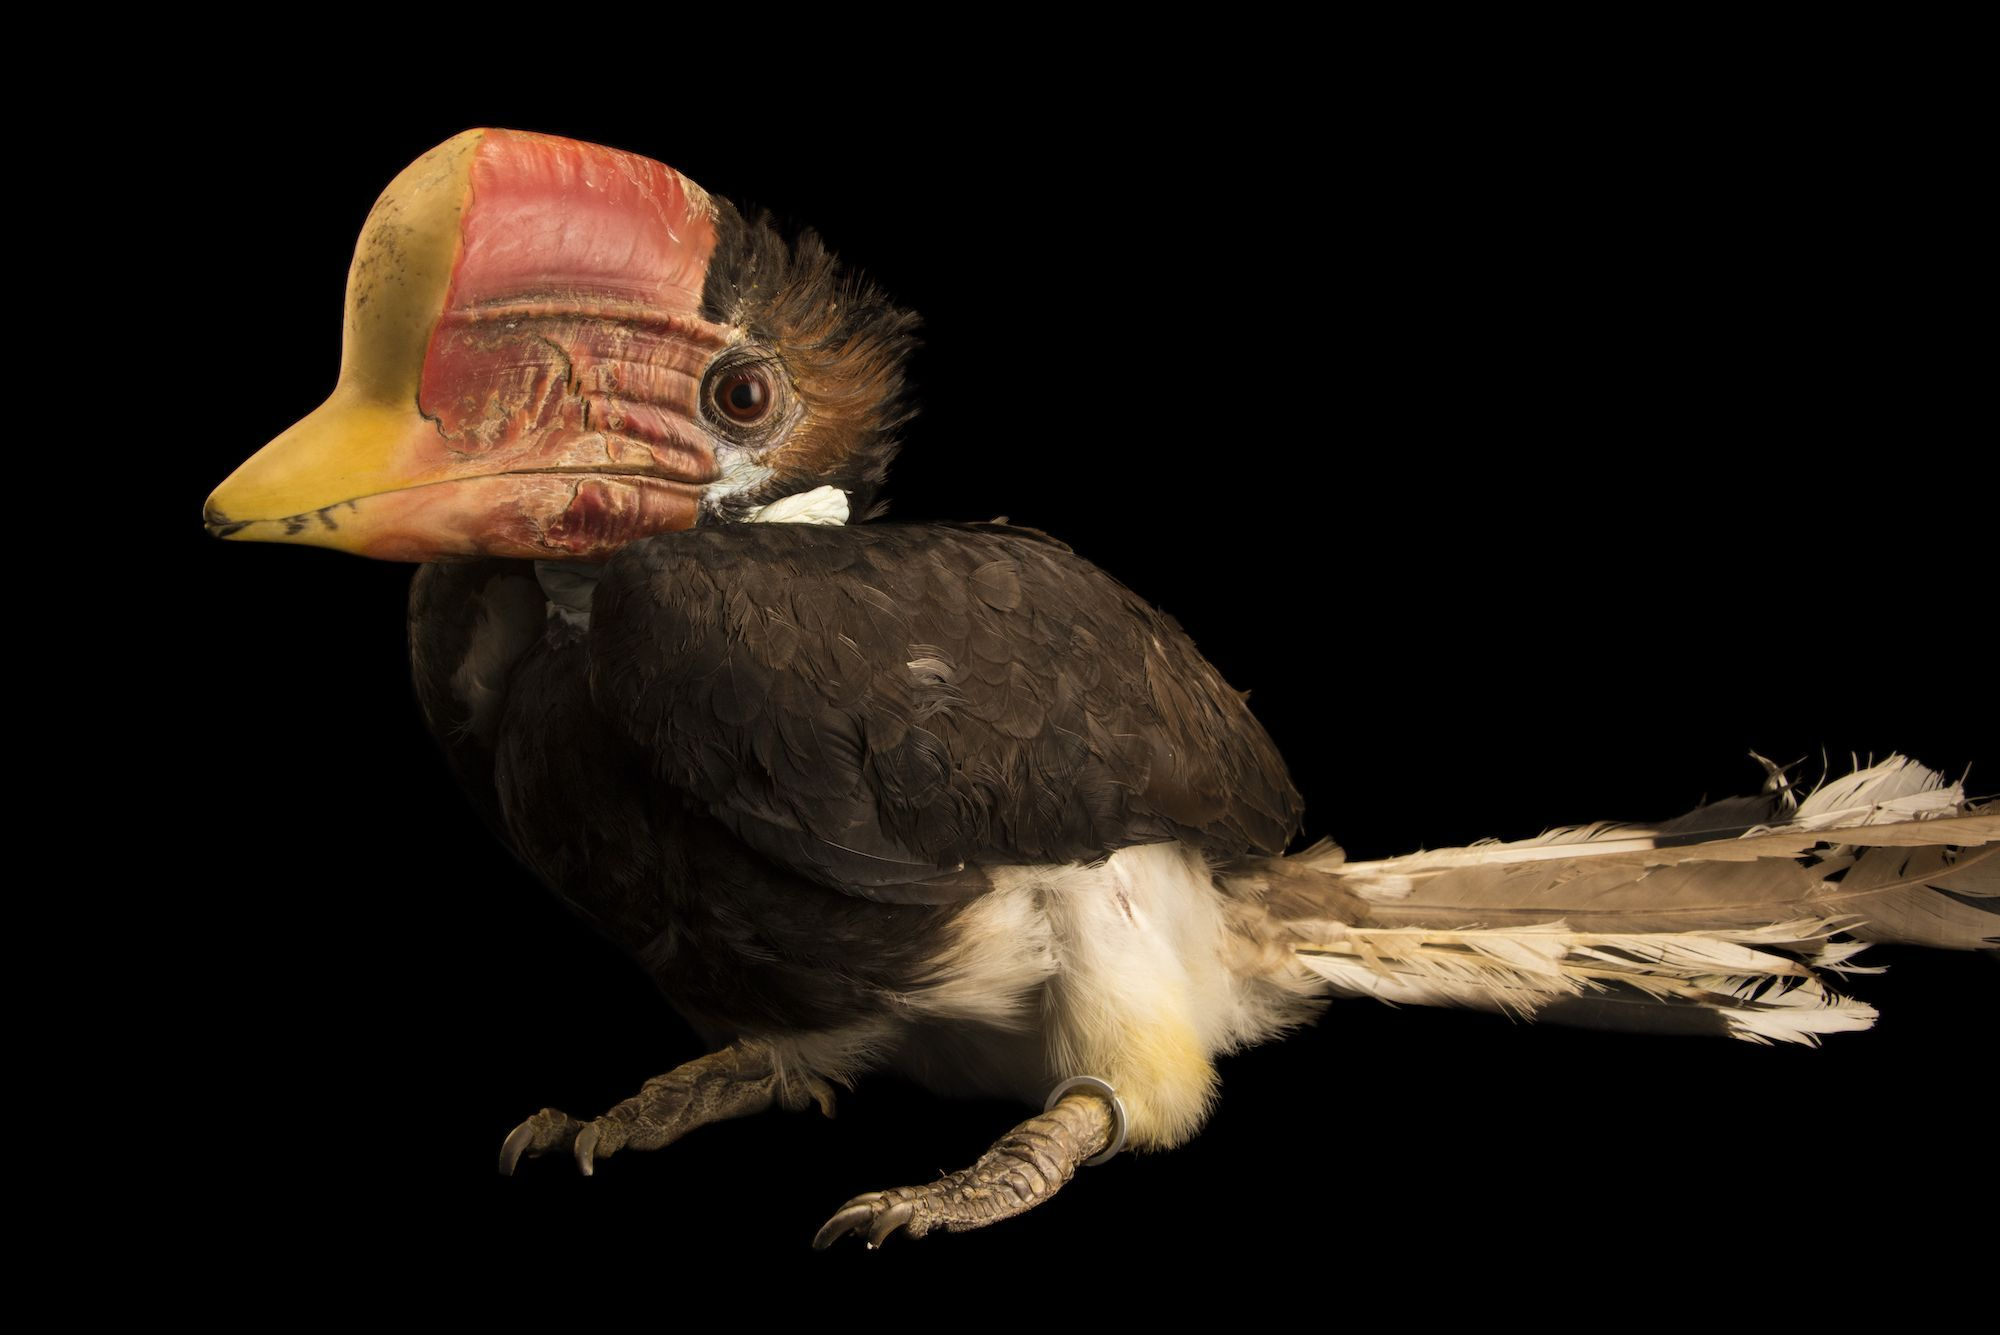 Photo Ark: Helmeted Hornbill | National Geographic Society